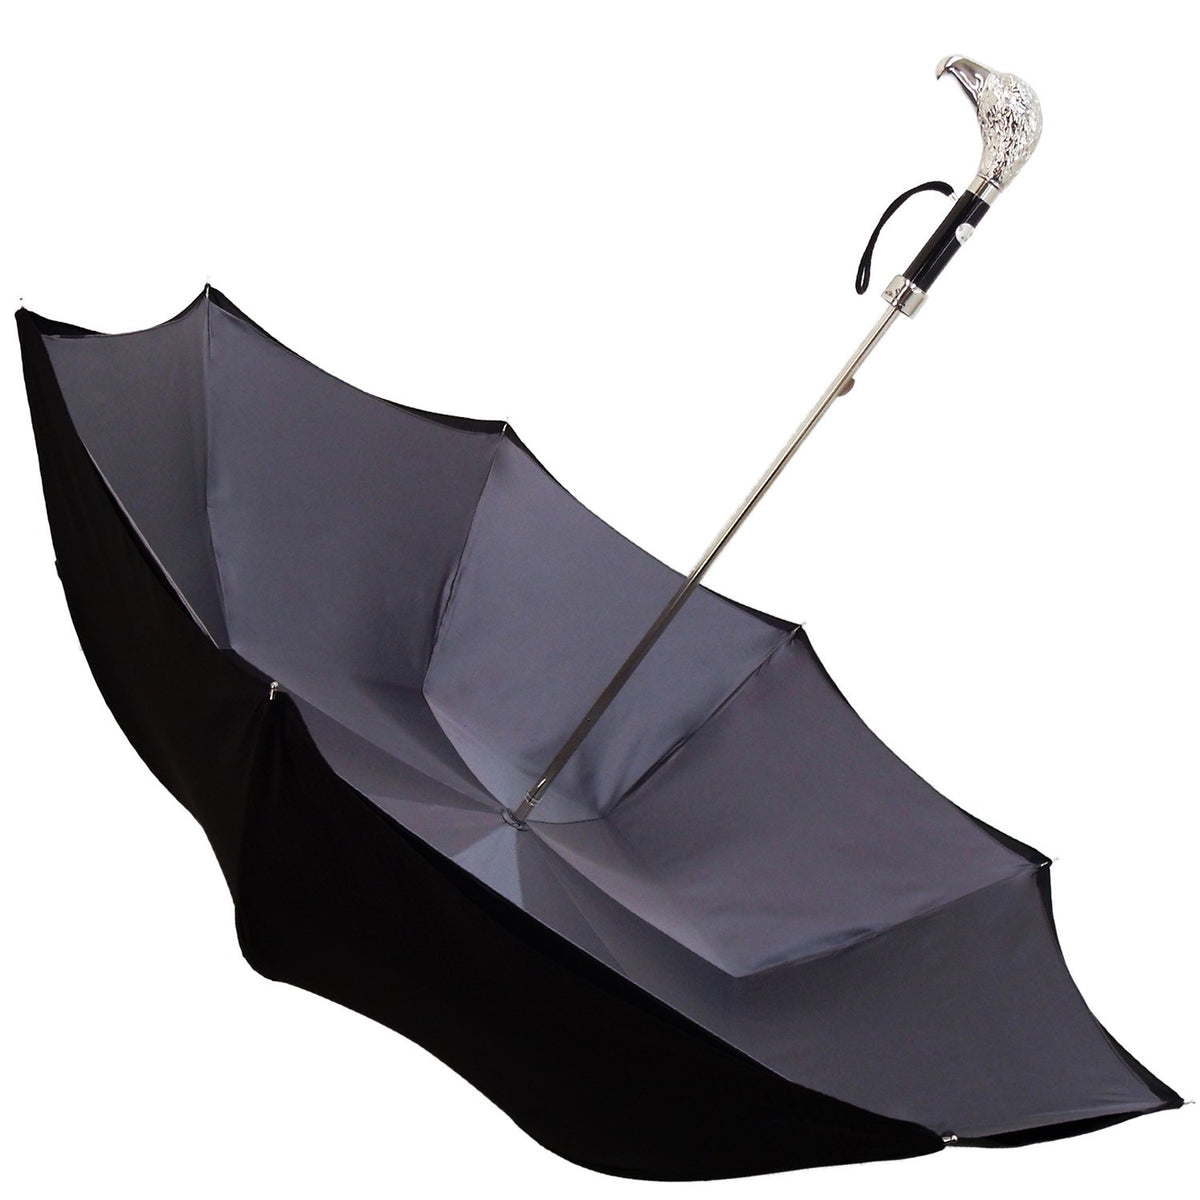 HANDMADE BLACK MAN DOUBLE CANOPY UMBRELLA